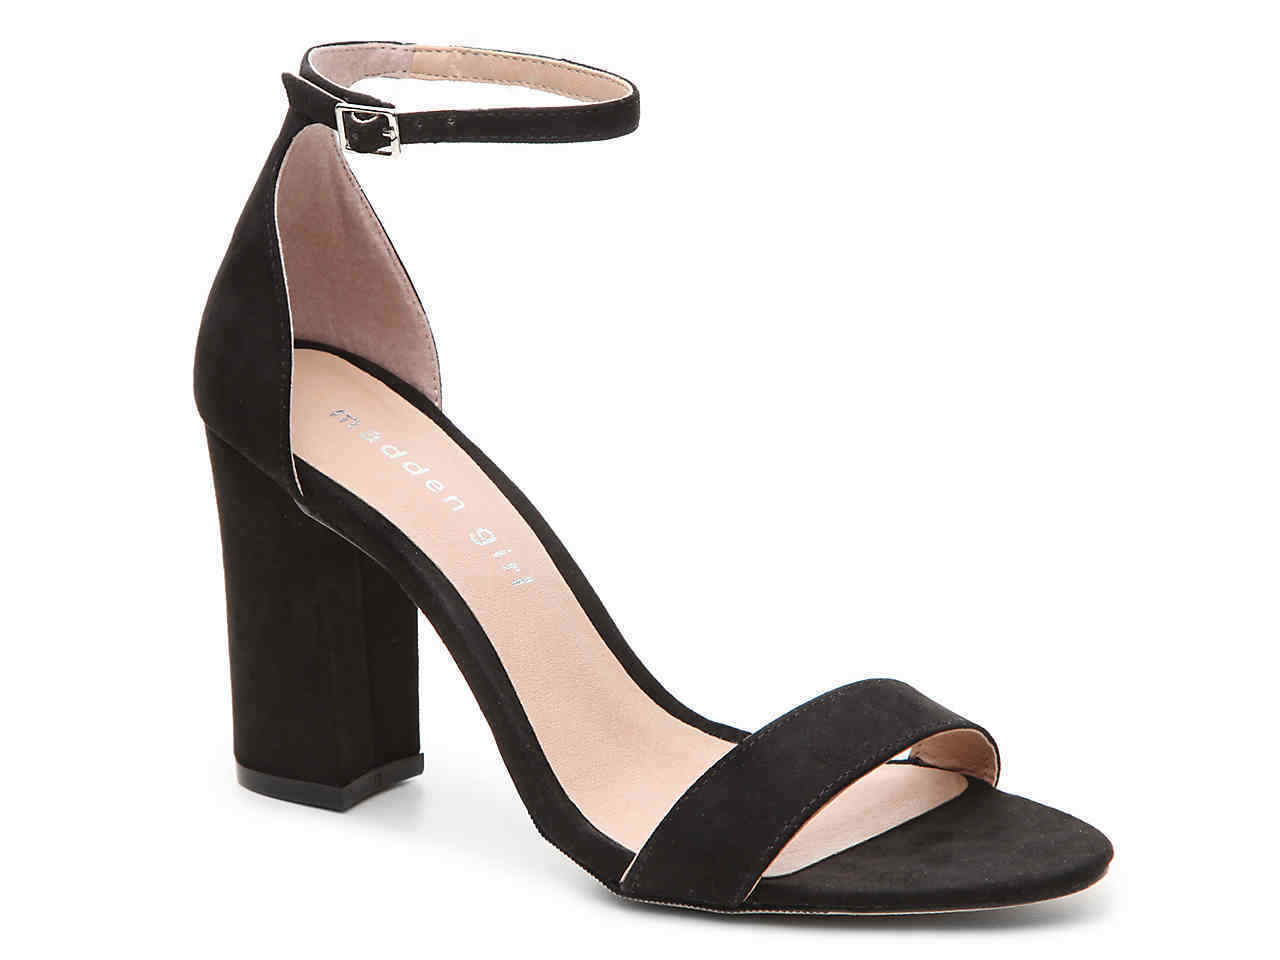 size 9 Madden Girl Beela Black Heels Womens Ankle Strap Strappy Sandals Womens Heels Shoes f57525